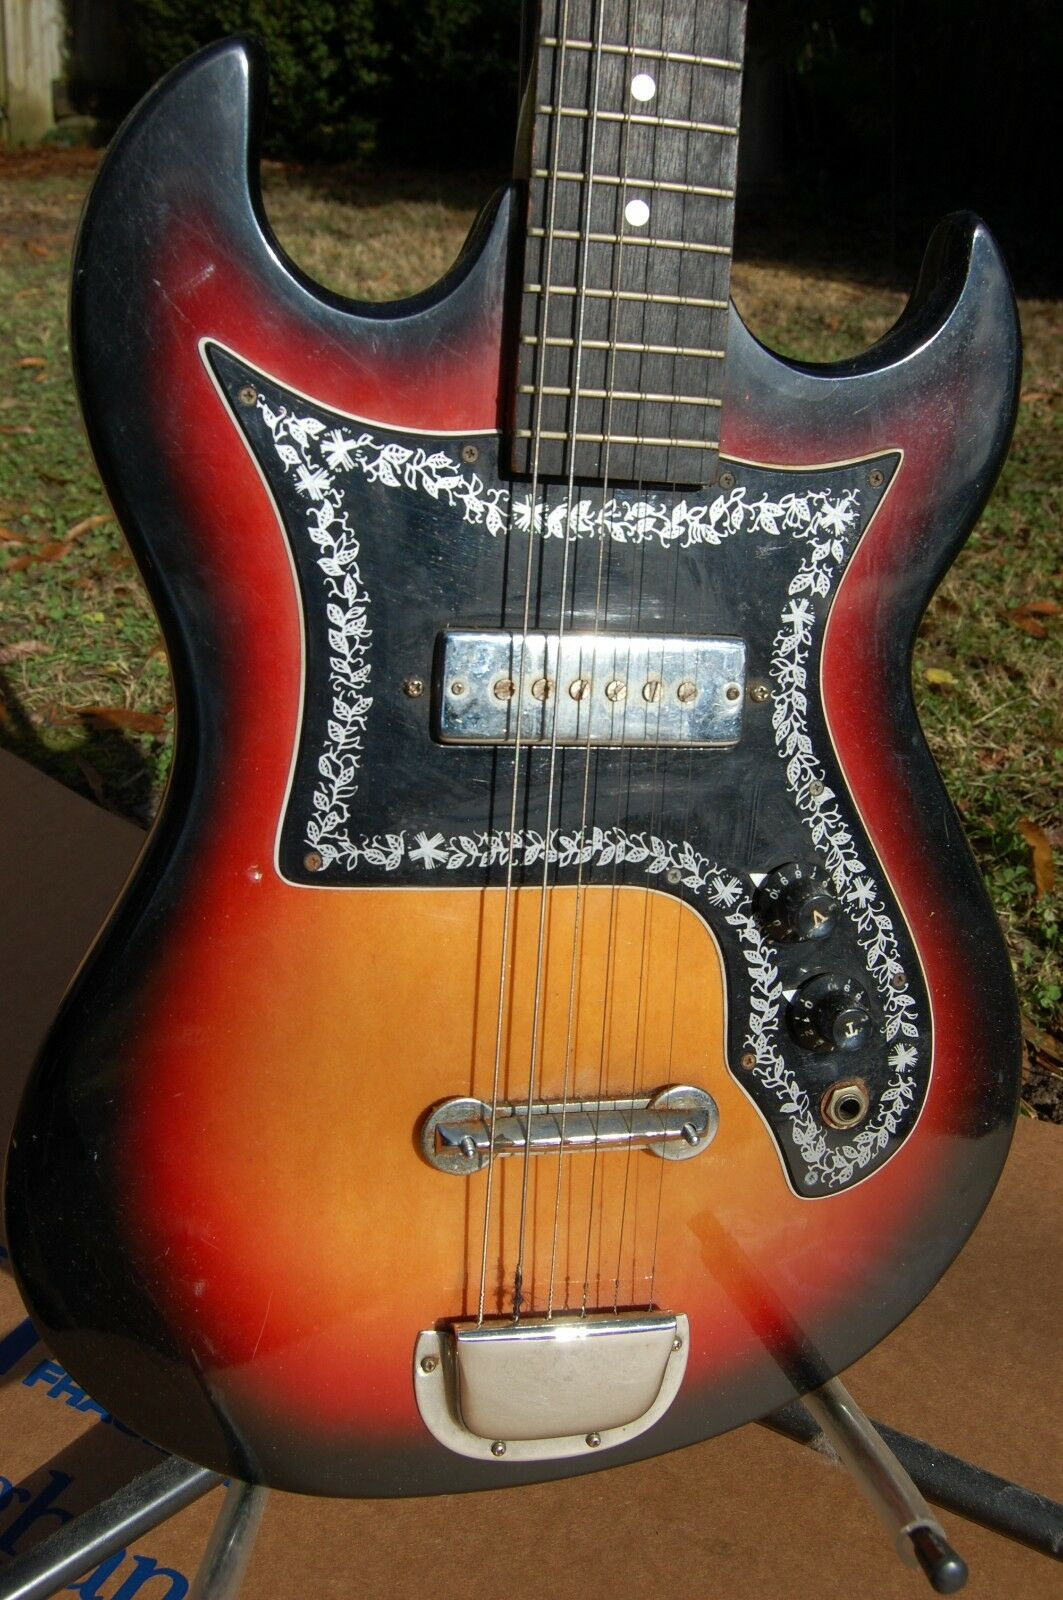 Global Korean Made Early 1970's      Solid Body Electric Guitar a8da9a